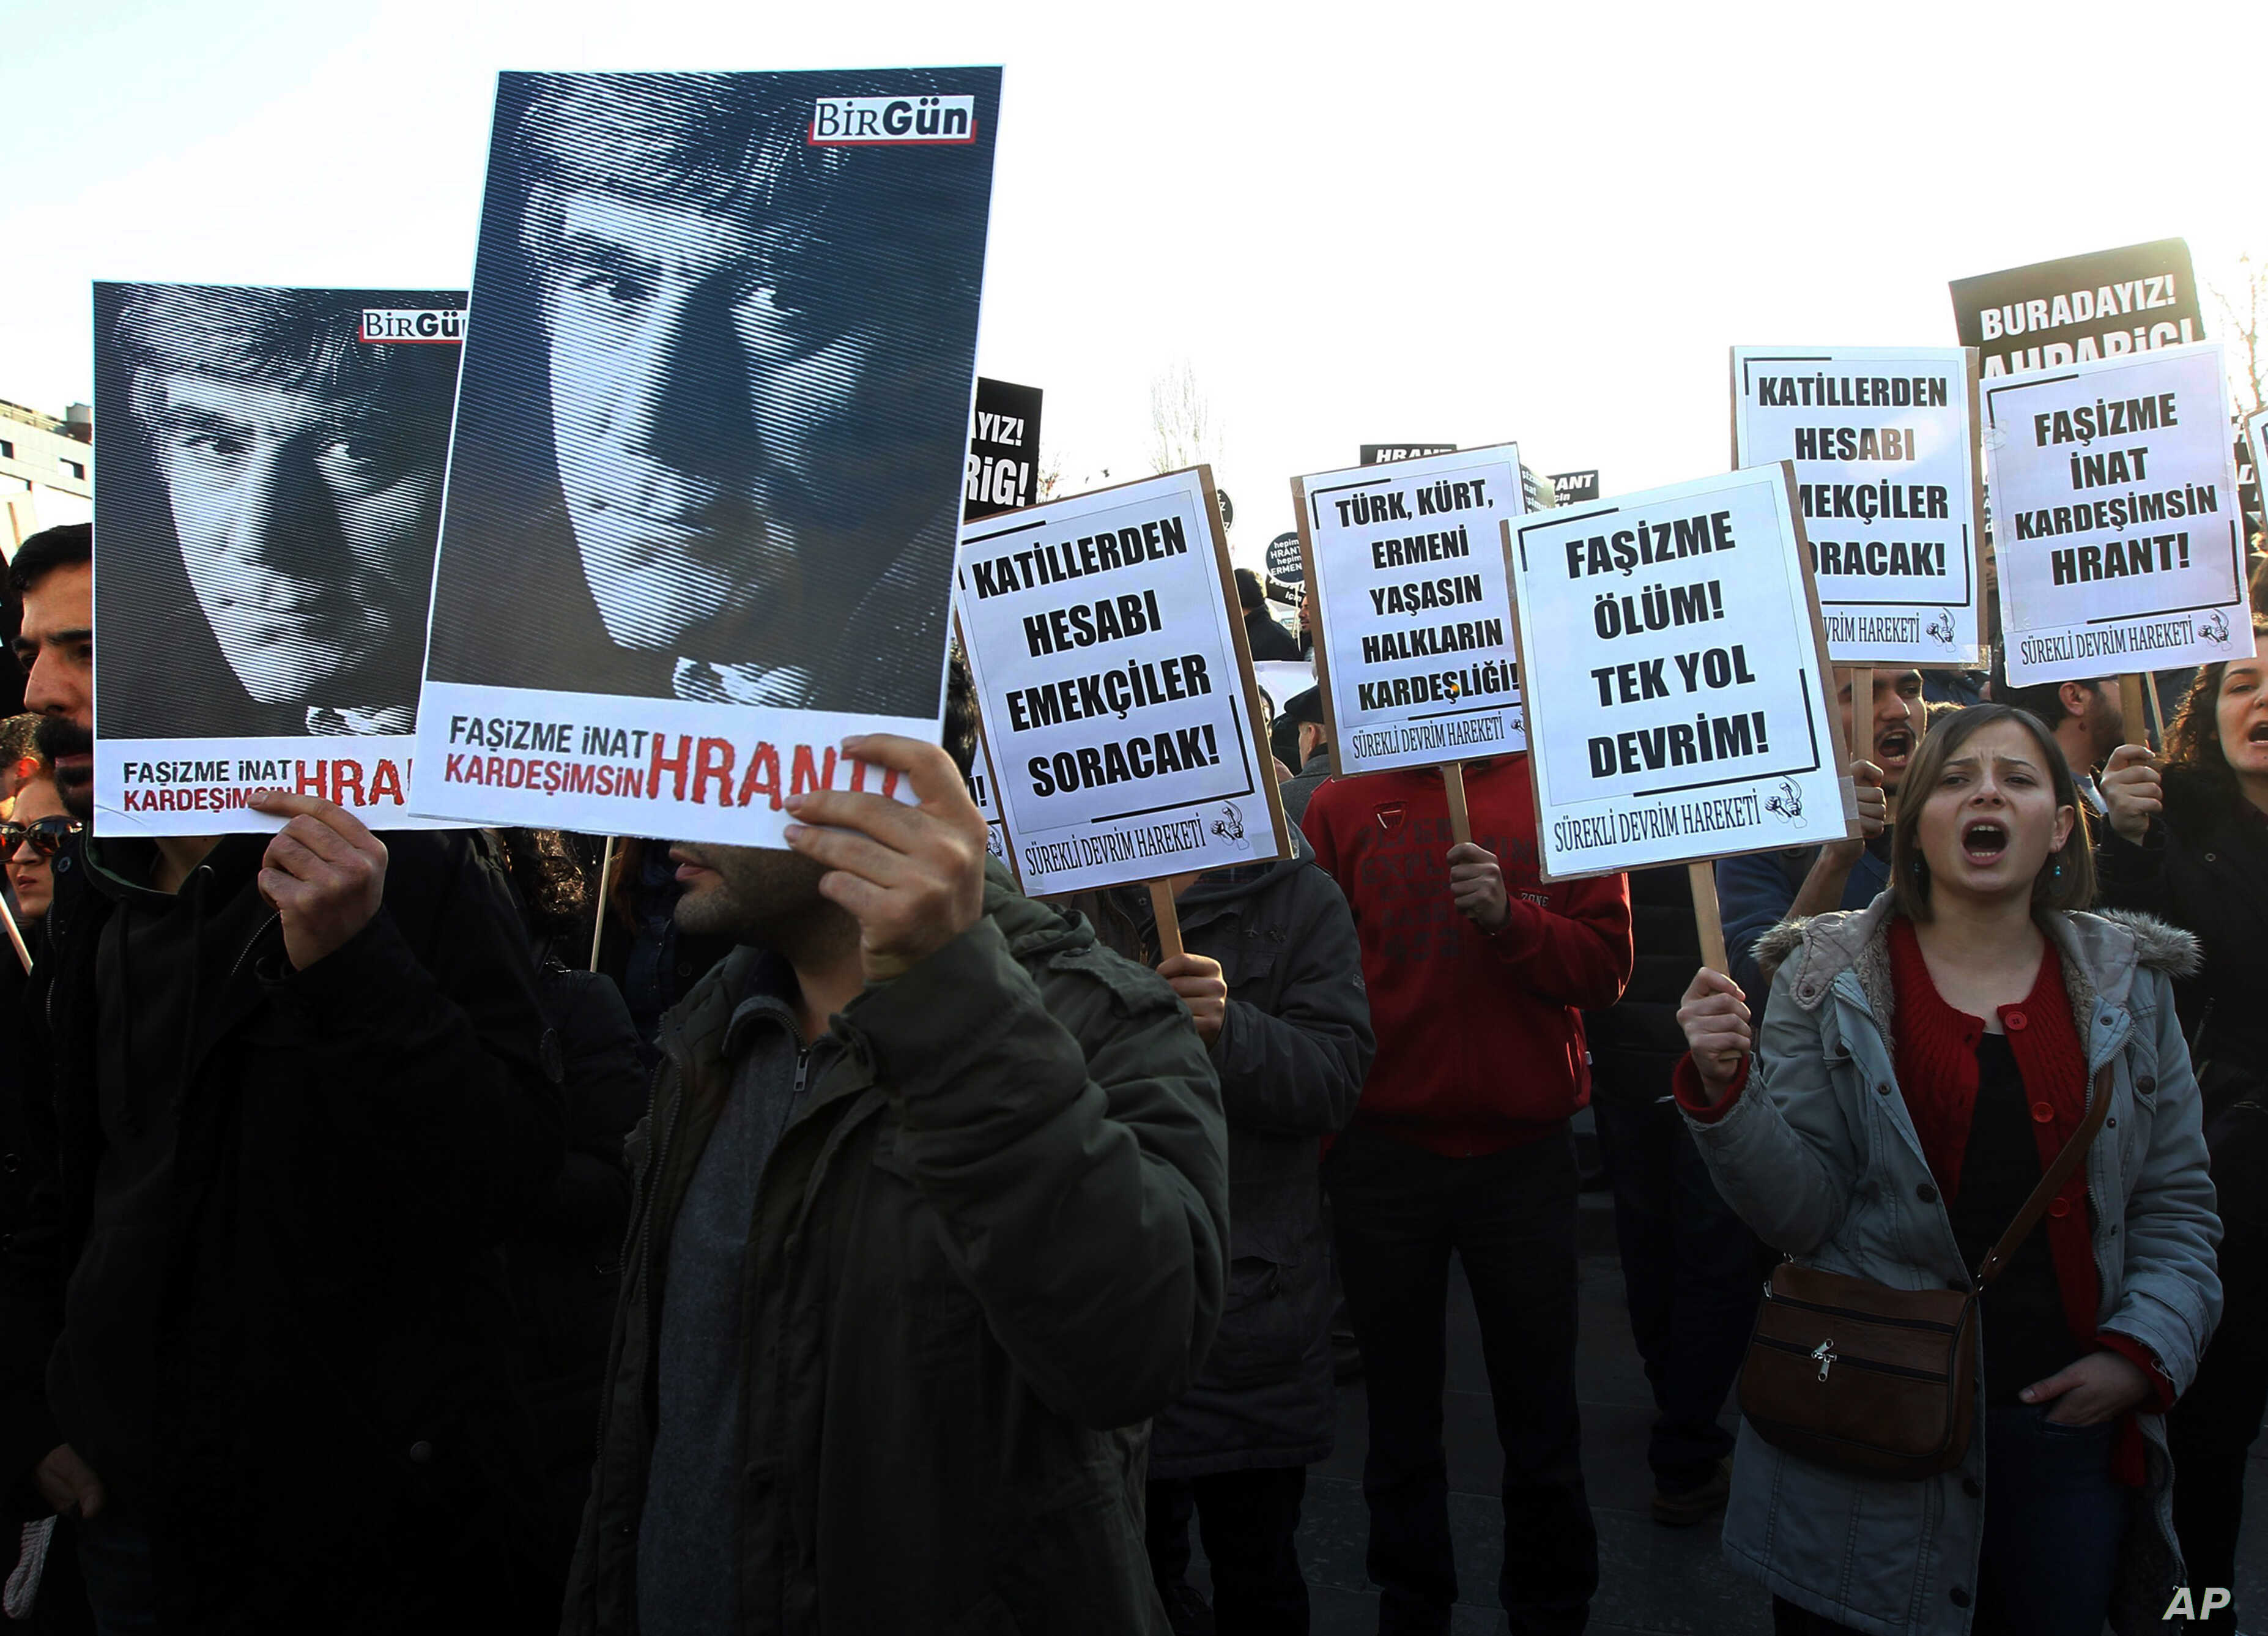 Hundreds of protesters march to mark the seventh anniversary of Turkish-Armenian journalist Hrant Dink's murder in Ankara, Turkey, Jan.19, 2014 as outrage continues to grow over a trial that failed to shed light on alleged official negligence or even